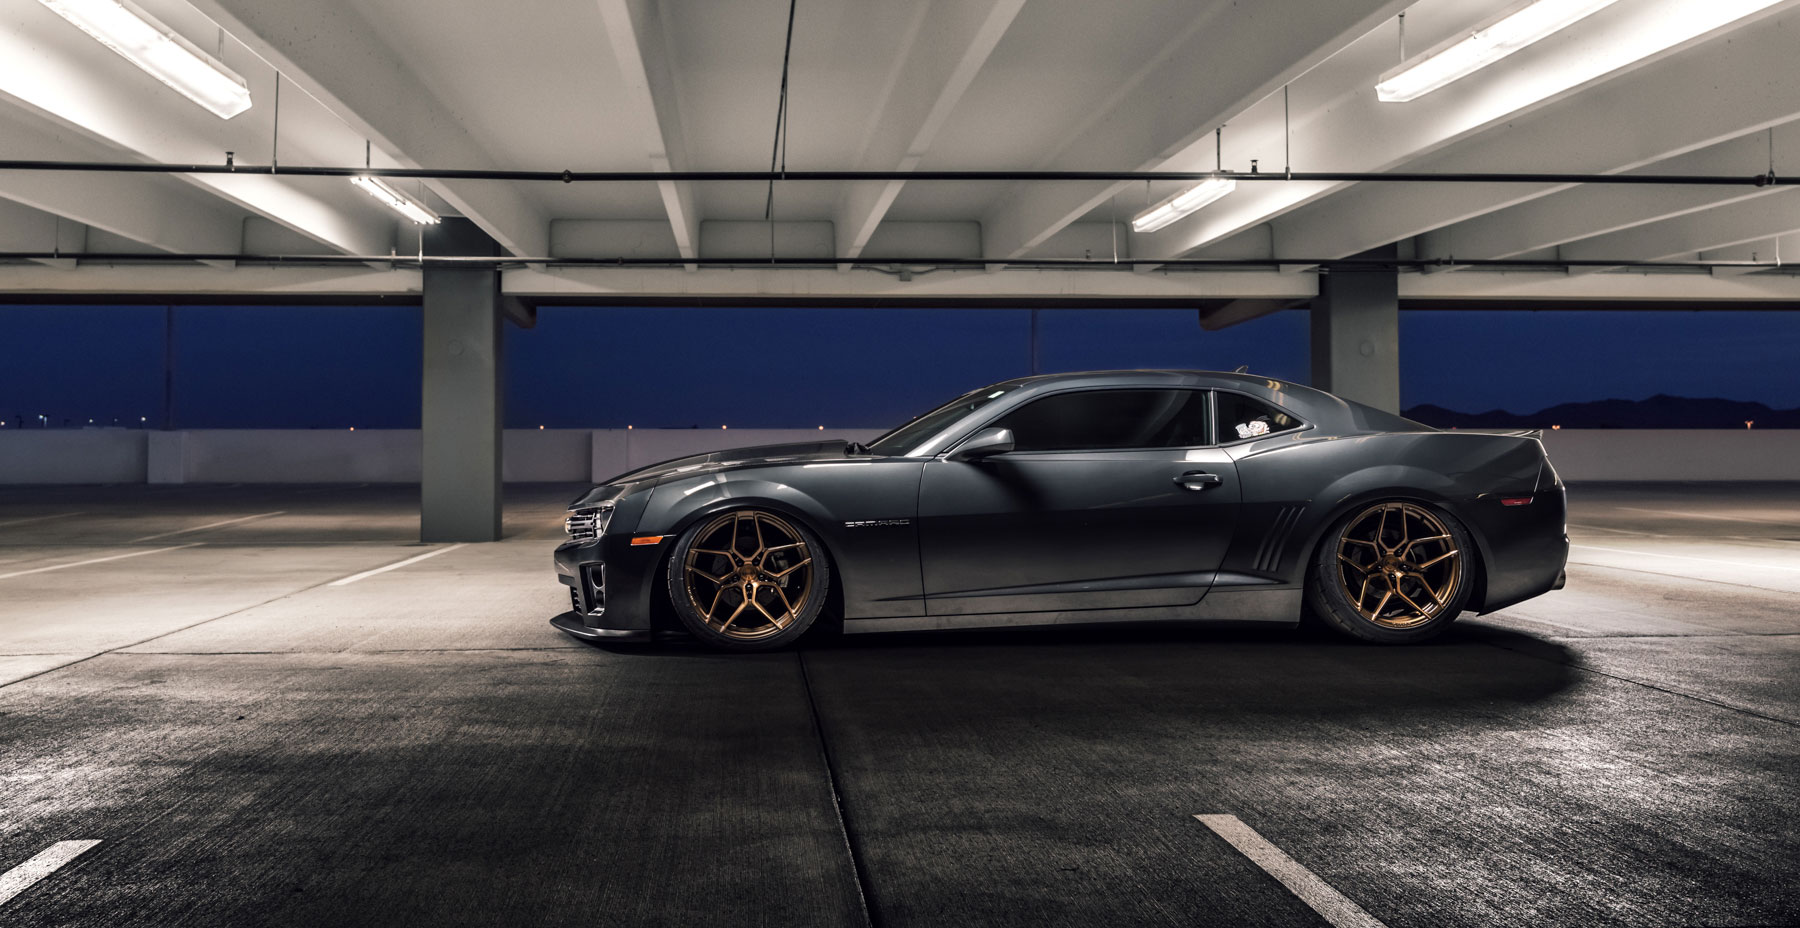 Gray Chevrolet Camaro SS x Rohana RFX11 Wheels (Finished in Brushed Bronze)